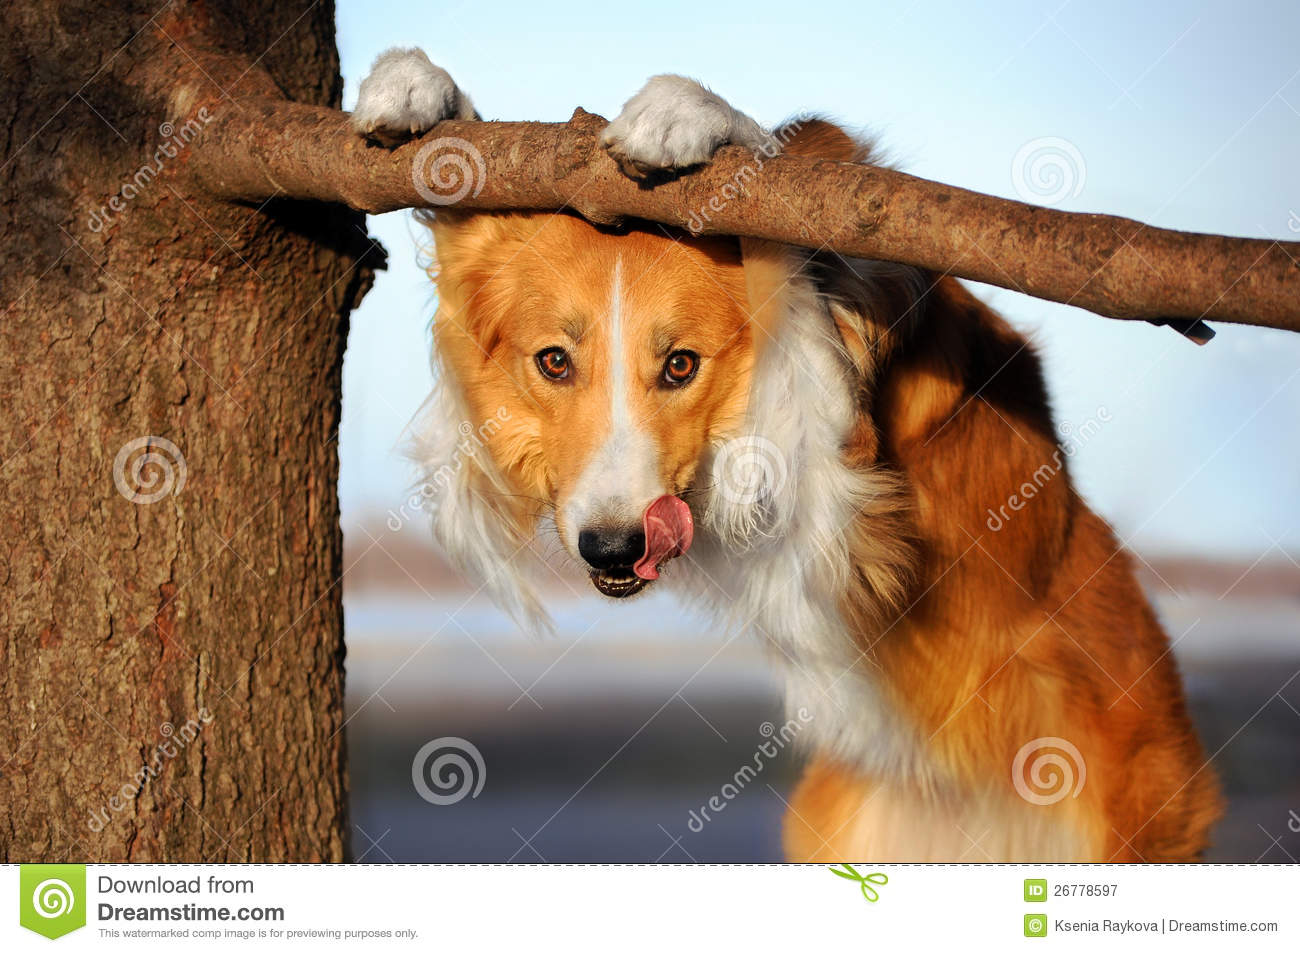 Image of: Cute Puppies Cute Happy Dog Makes Funny Pose And Sticks His Tongue Dreamstimecom Cute Funny Dog Stucks Her Tongue Stock Image Image Of Domestic